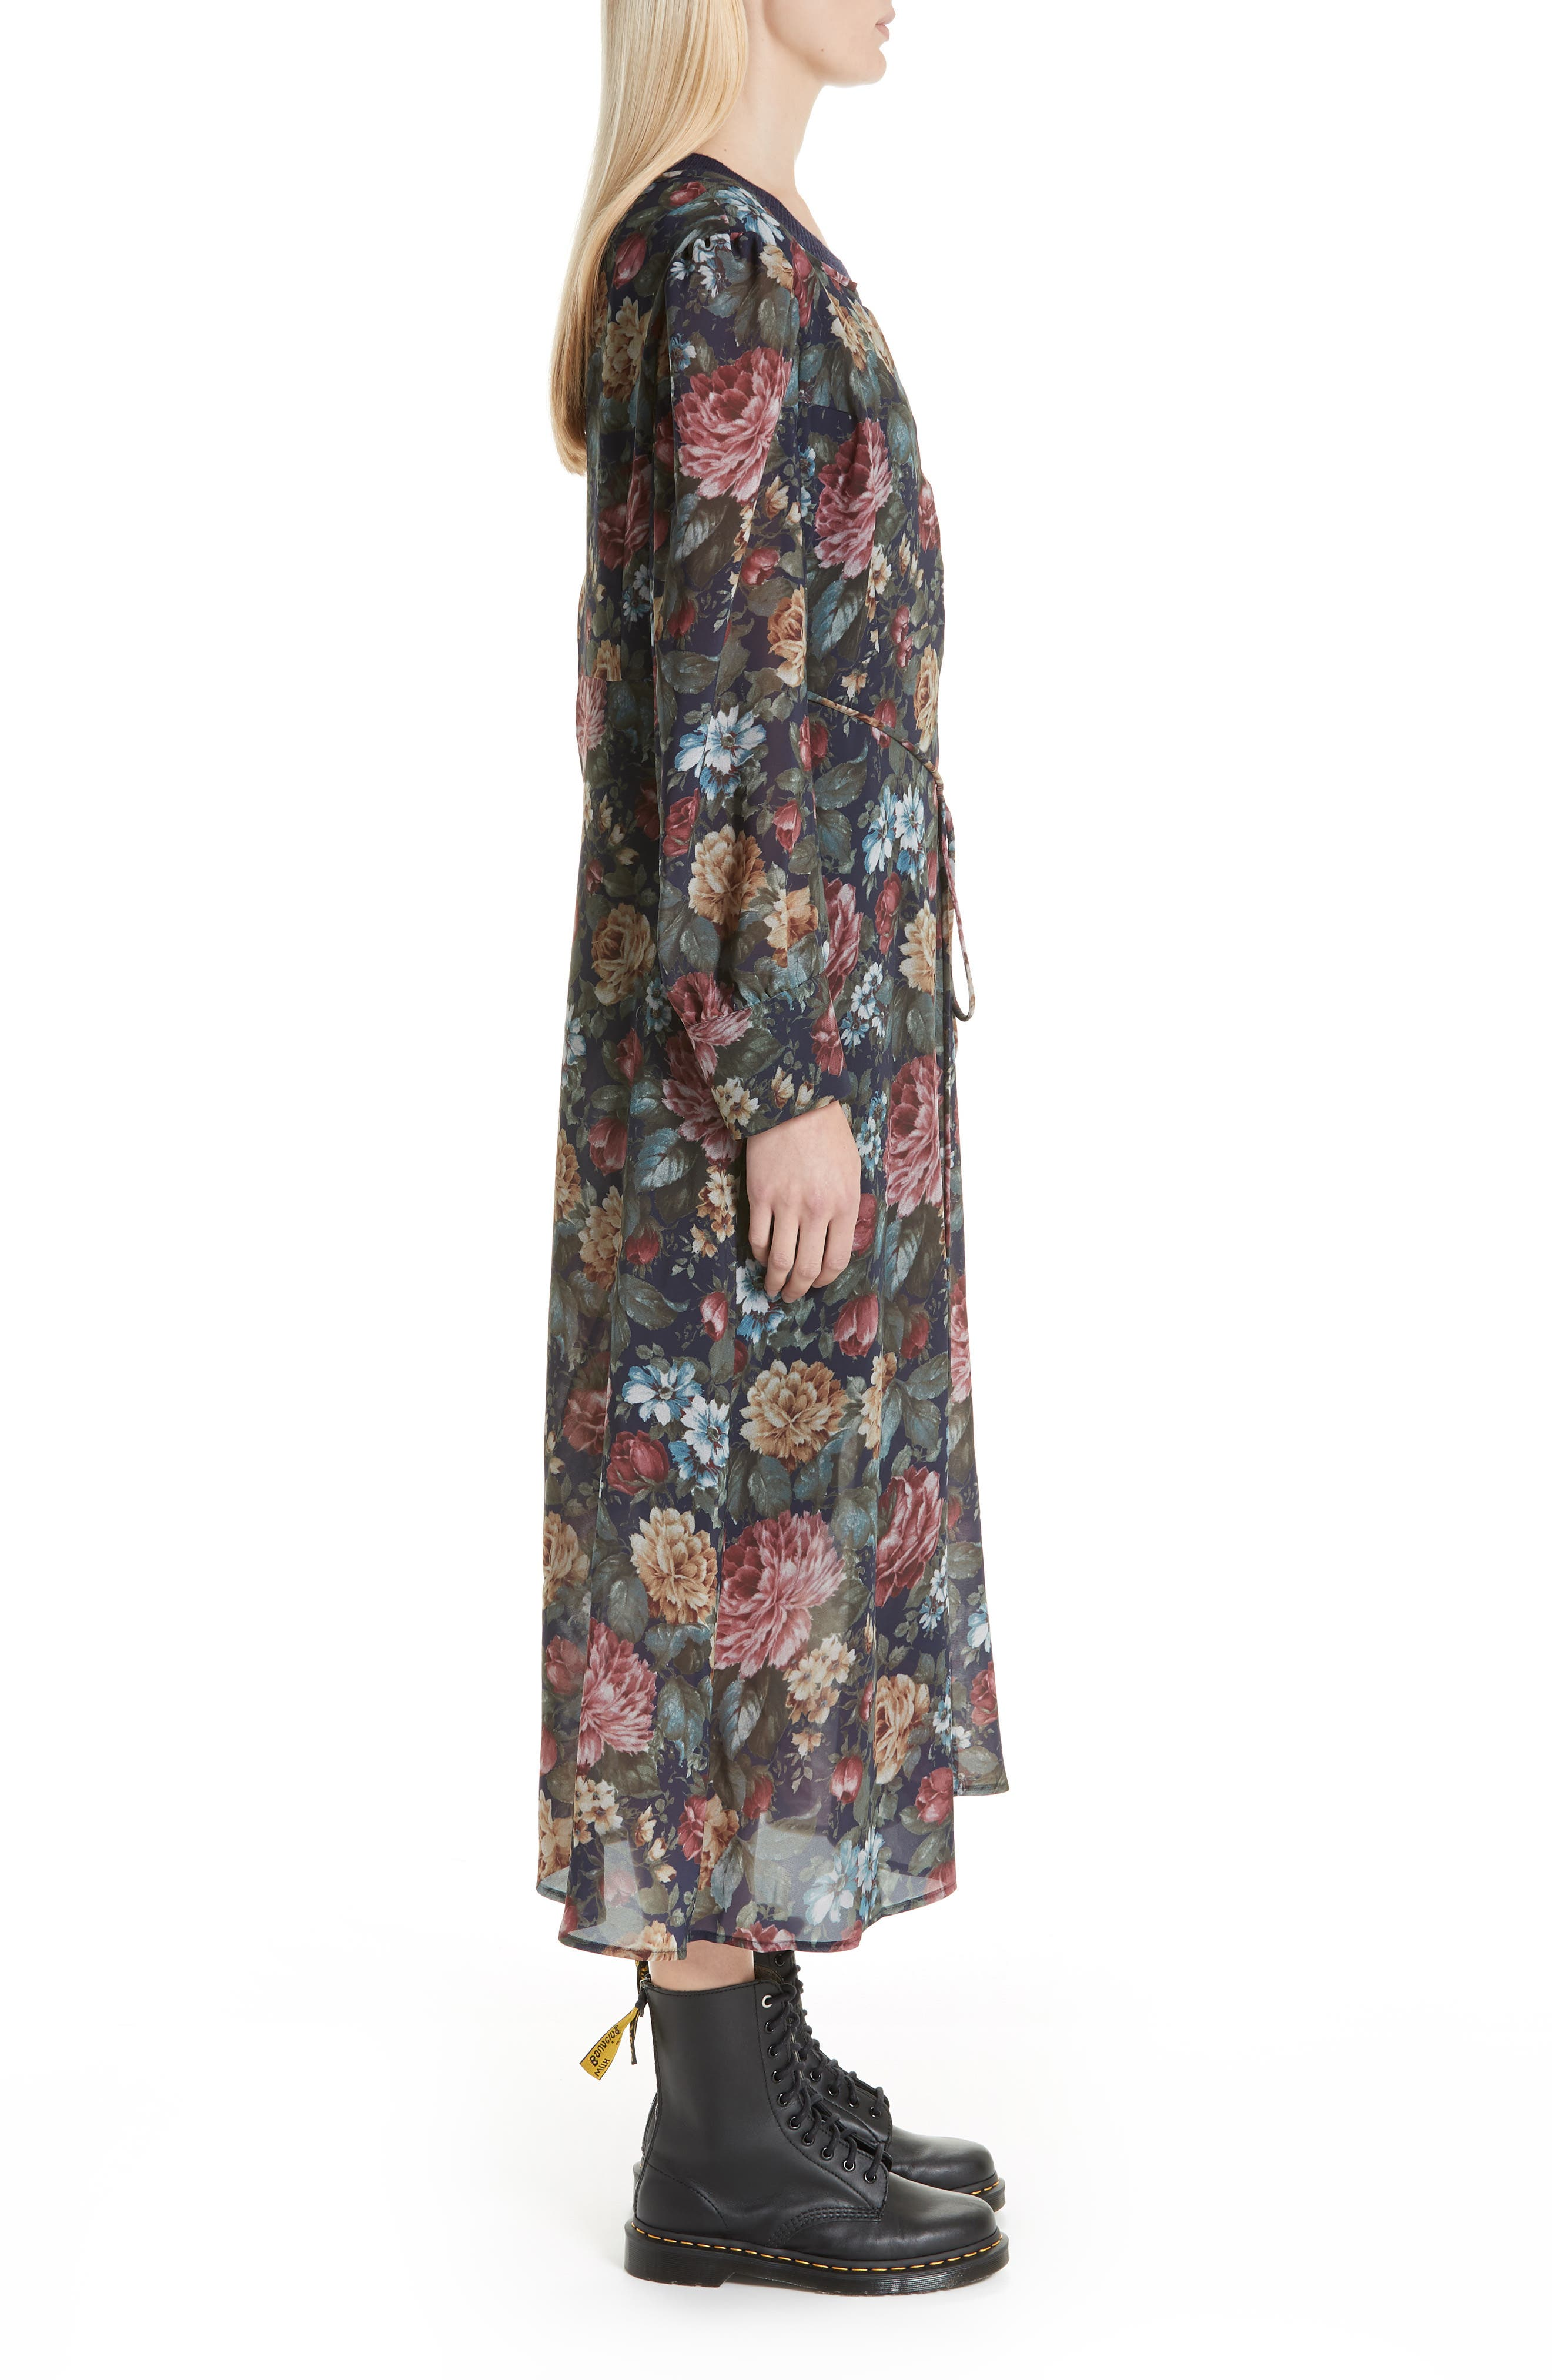 Knit Collar Floral Chiffon Dress,                             Alternate thumbnail 3, color,                             NAVY/ RED/ YELLOW